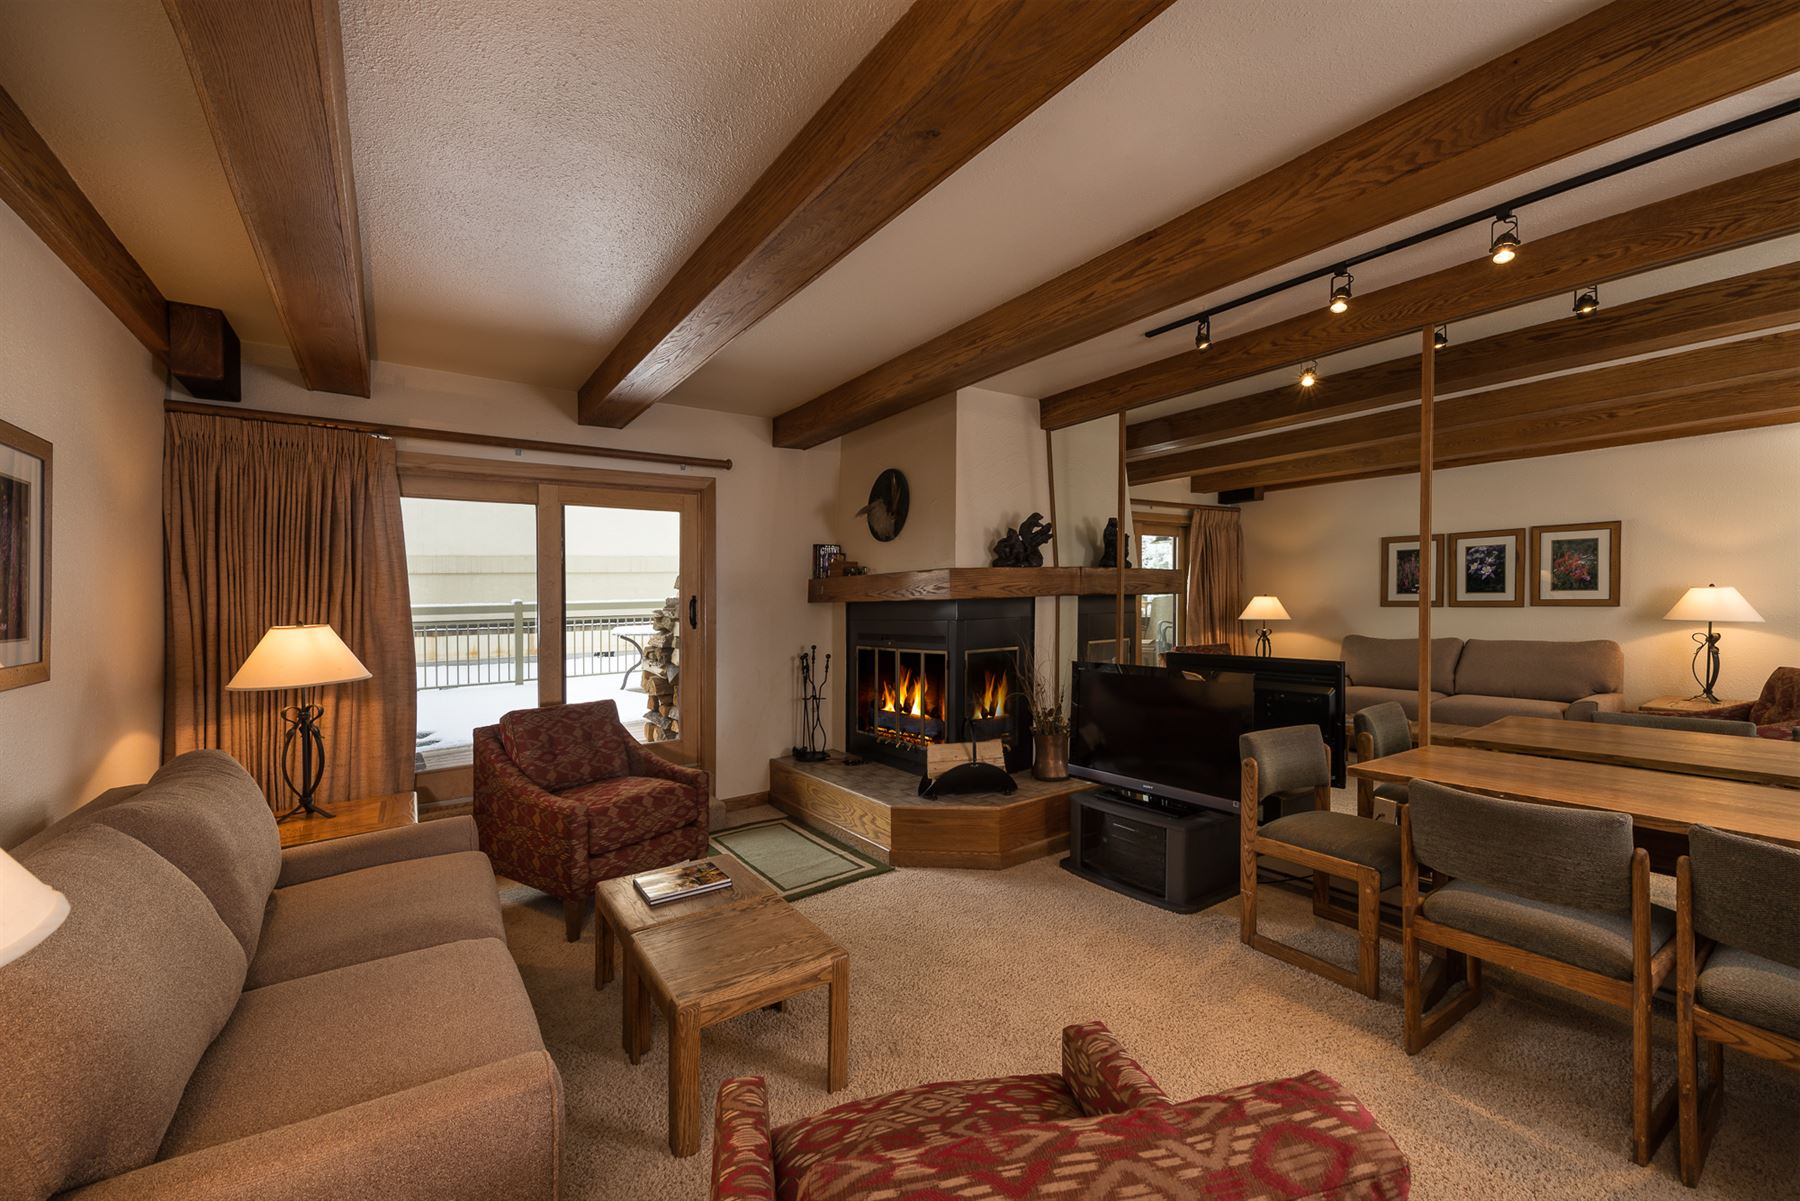 2BGold_Living room with corner fireplace and dining table